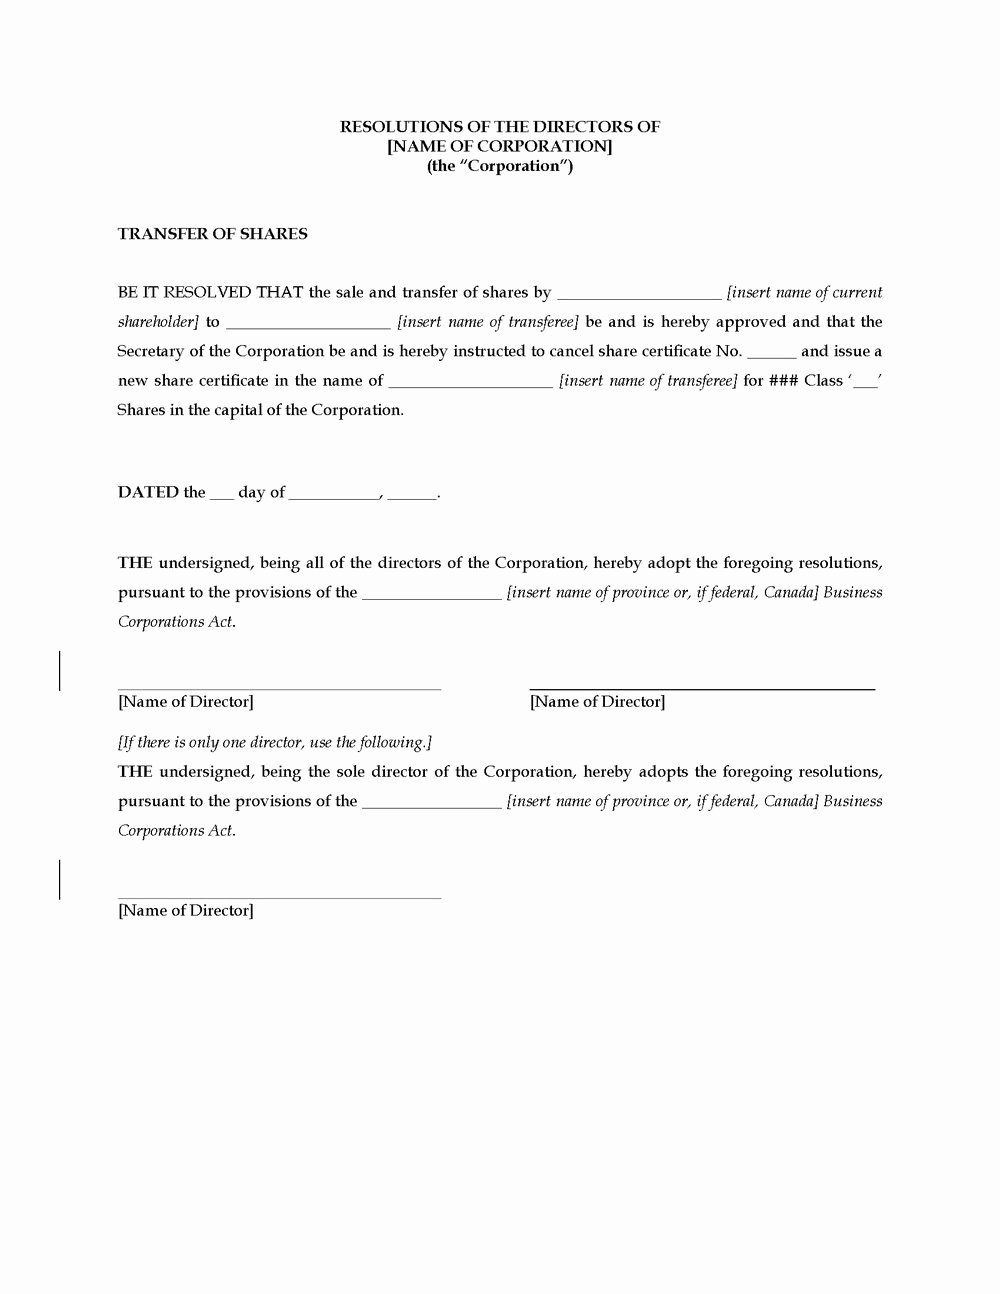 Corporate Resolution Authorized Signers Template Awesome Llc Corporate Resolution Template Templates